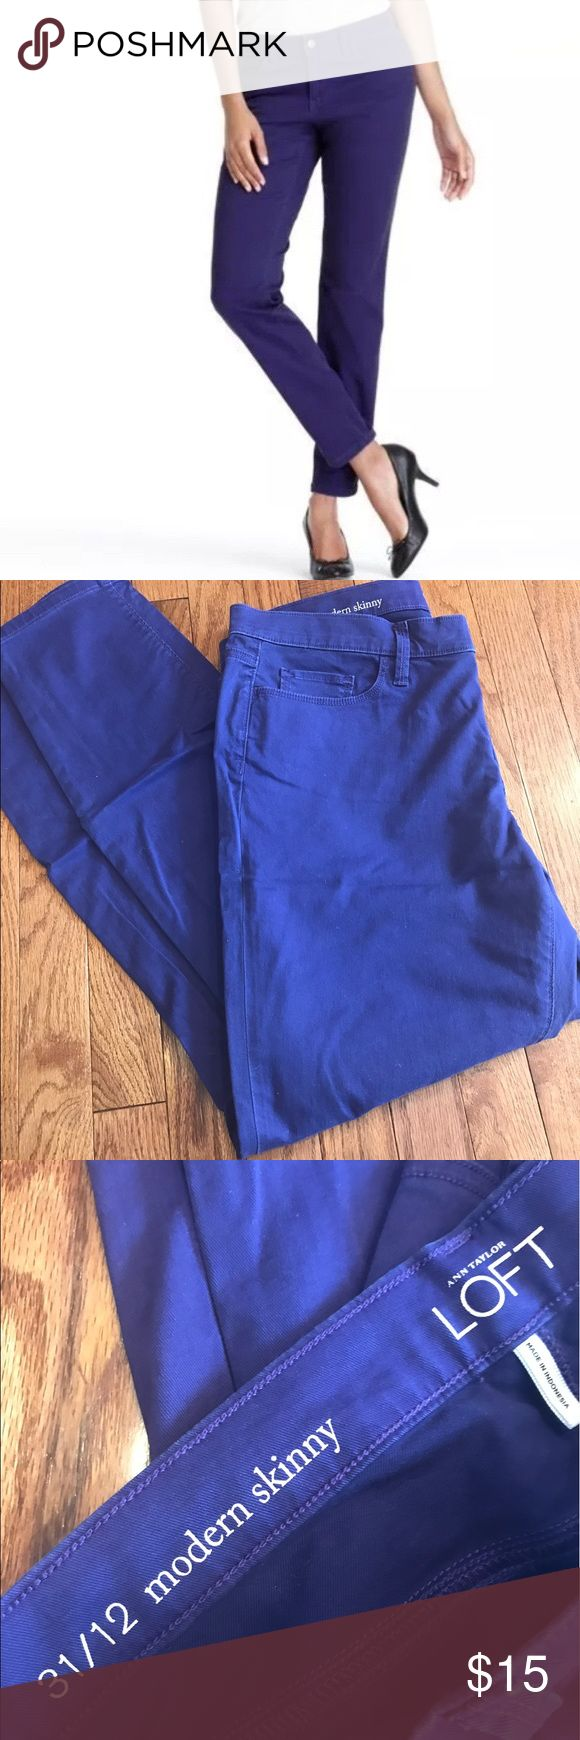 Purple Loft Modern Skinny Pants Feel Soft! The other pictures make them look blue but they are purple! A pretty deep purple. Skinny style pants with pockets LOFT Pants Skinny